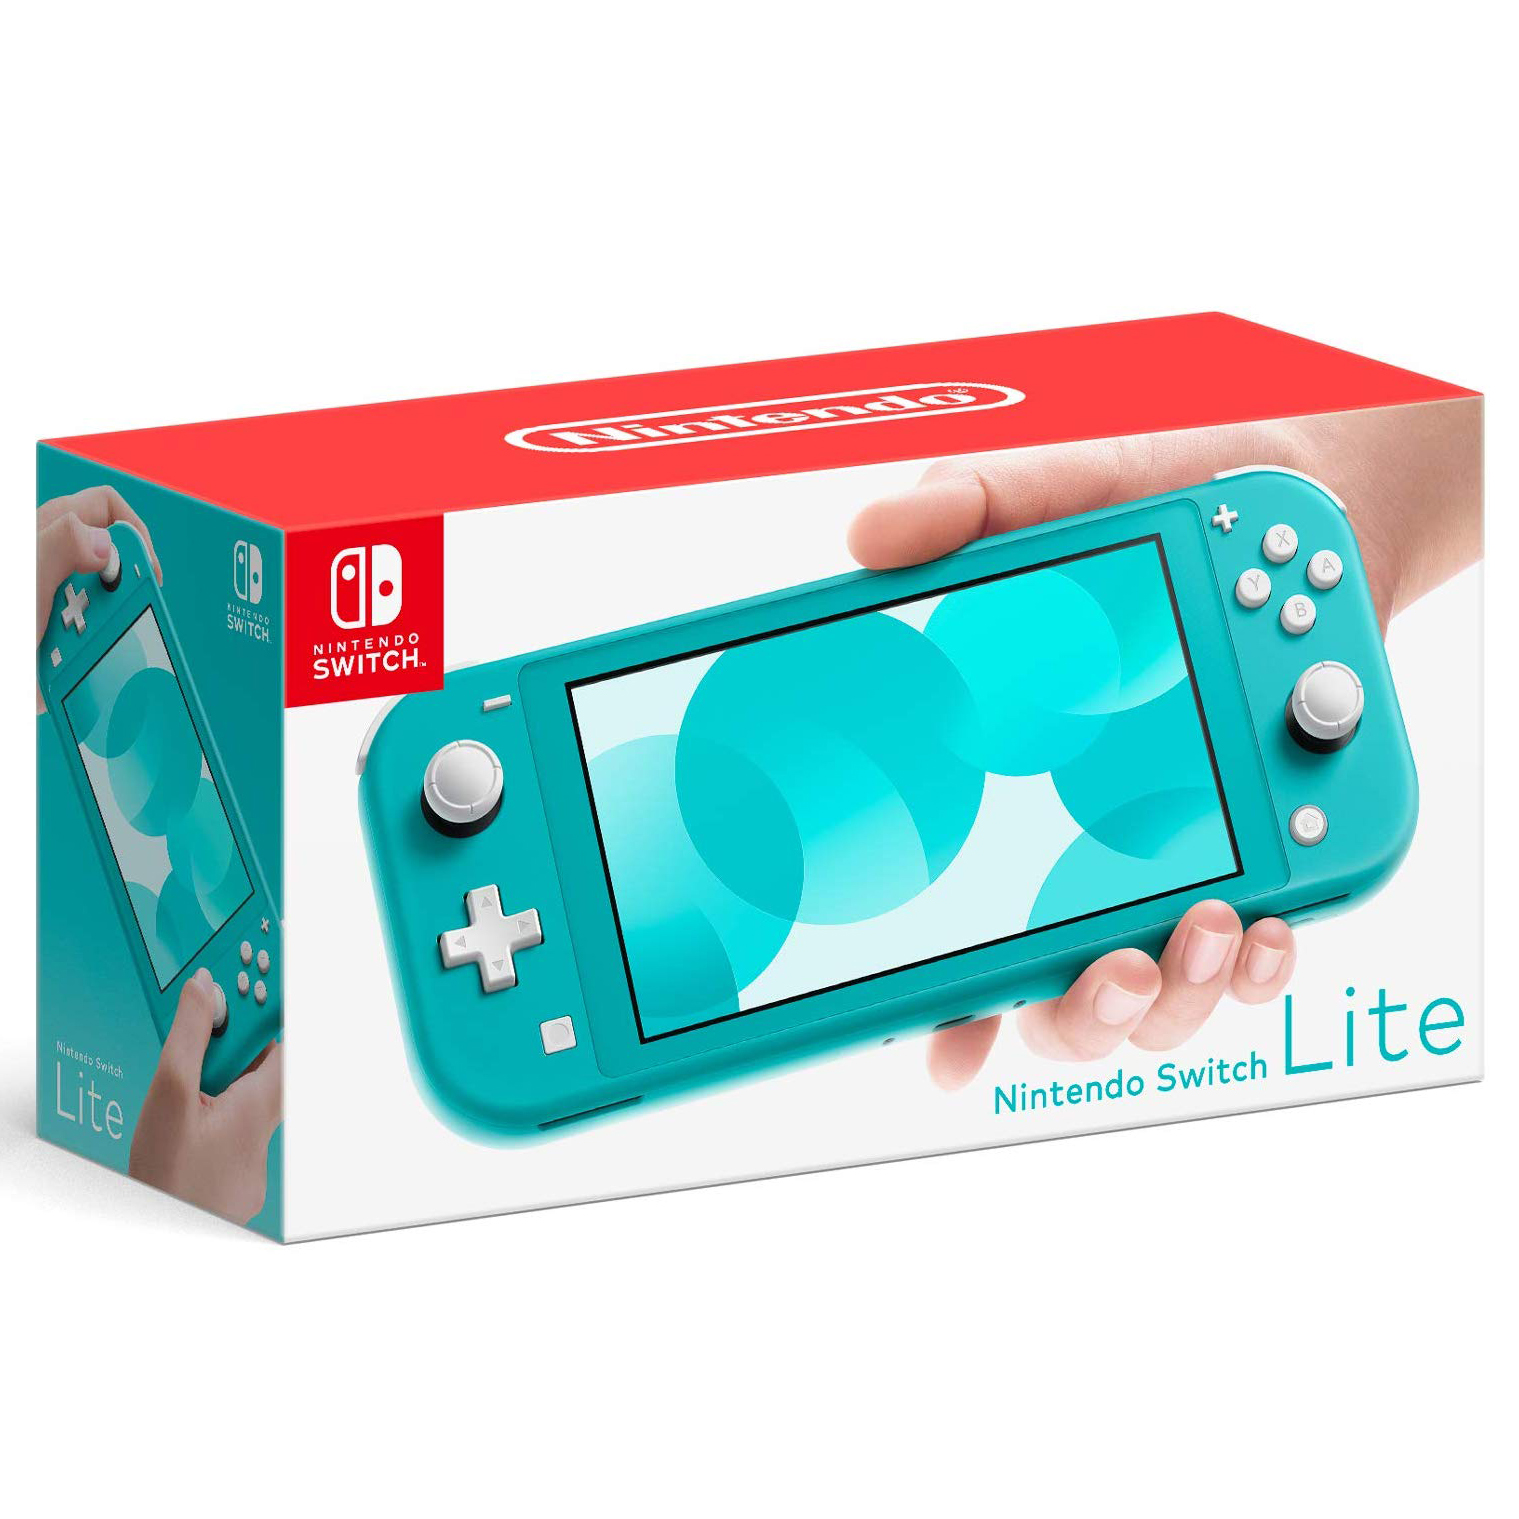 Best Christmas gifts 2019 - Nintendo Switch Lite